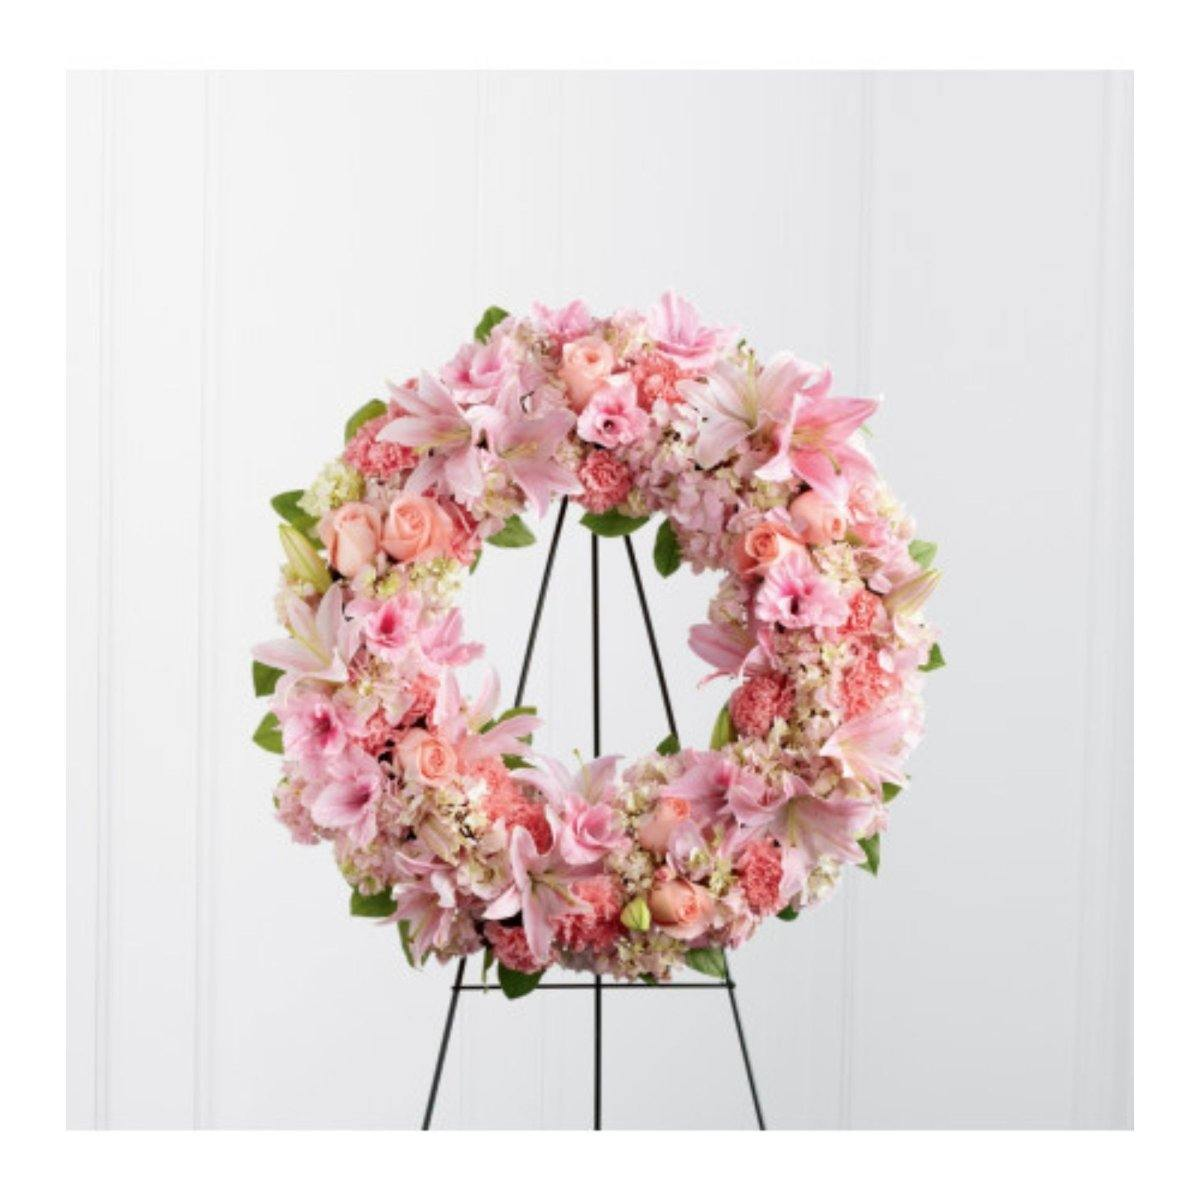 The FTD® Loving Remembrance Wreath